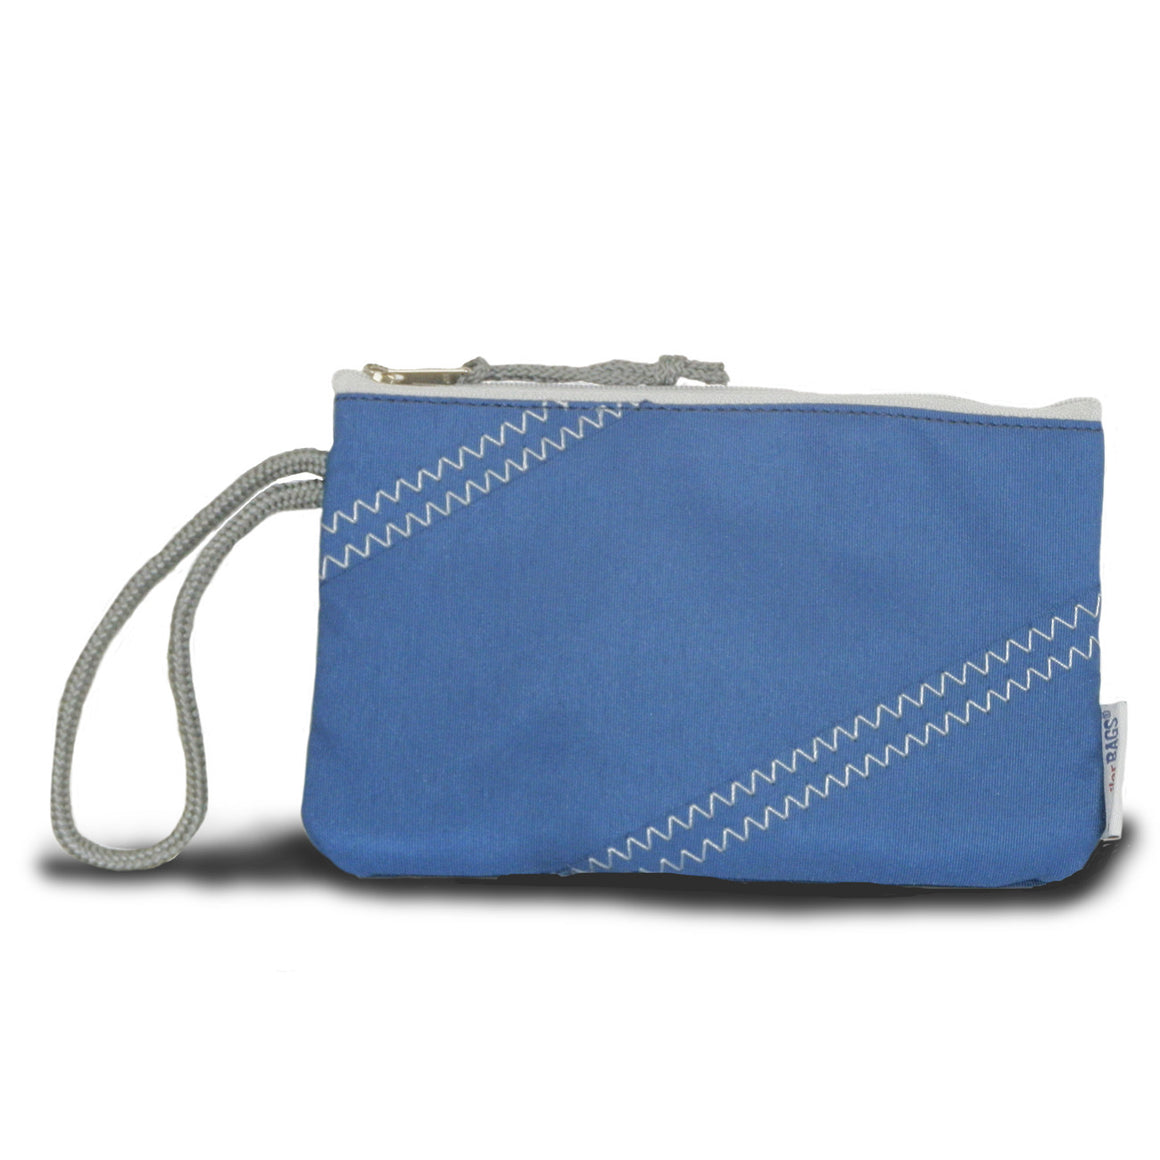 Chesapeake Wristlet by SailorBags Nautical Blue w/ Grey Trim